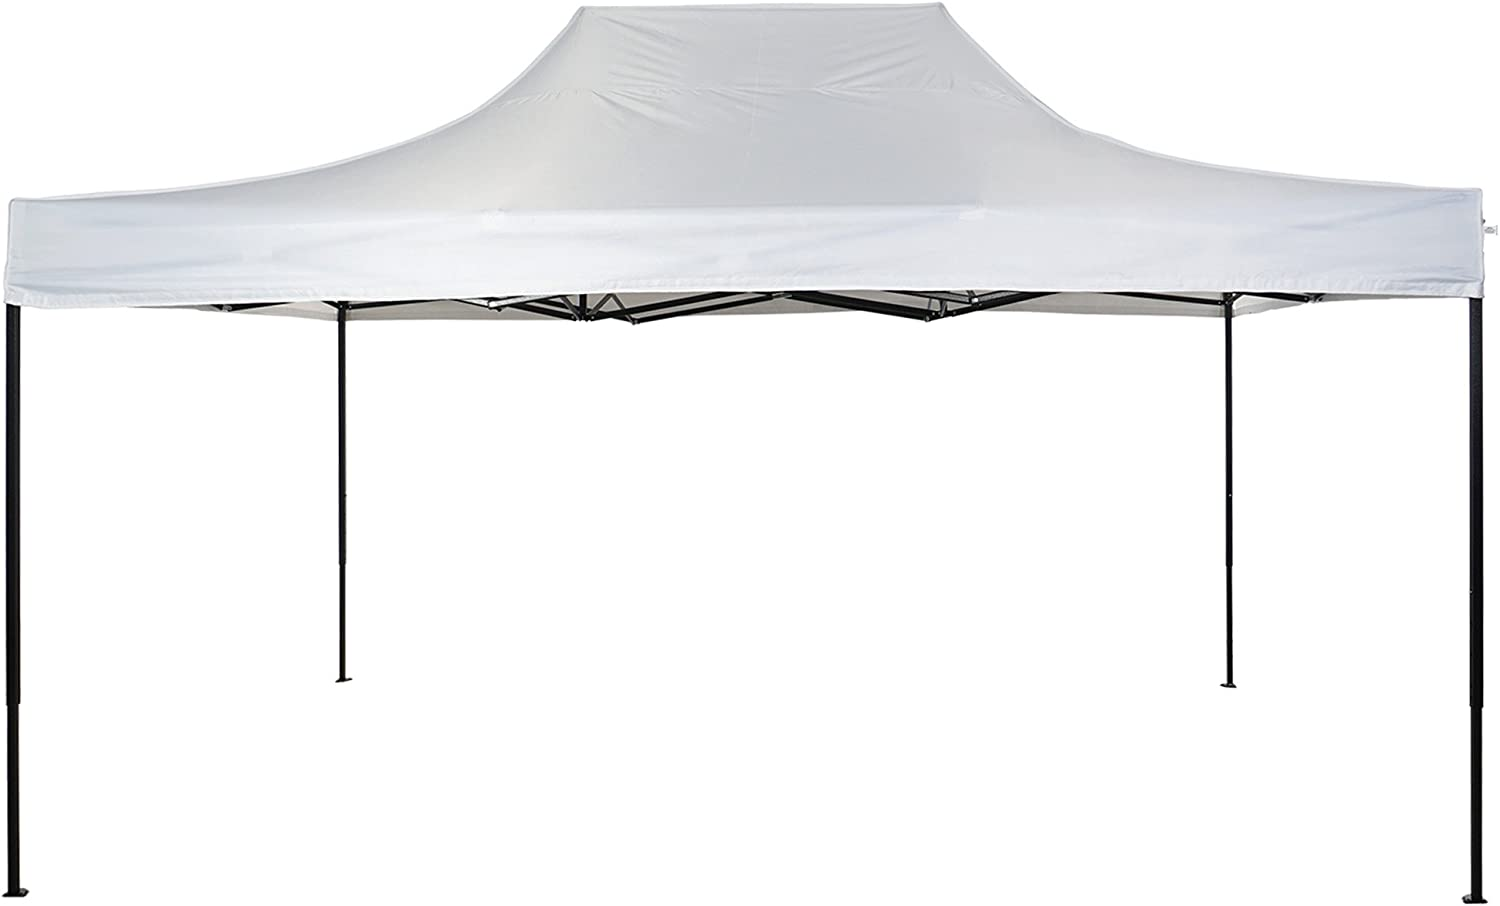 American Phoenix Canopy Tent 10×15 Outdoor Pop Up Easy Portable Instant Wedding Party Tent Event Commercial Fair Car Shelter Canopy White, 10×15